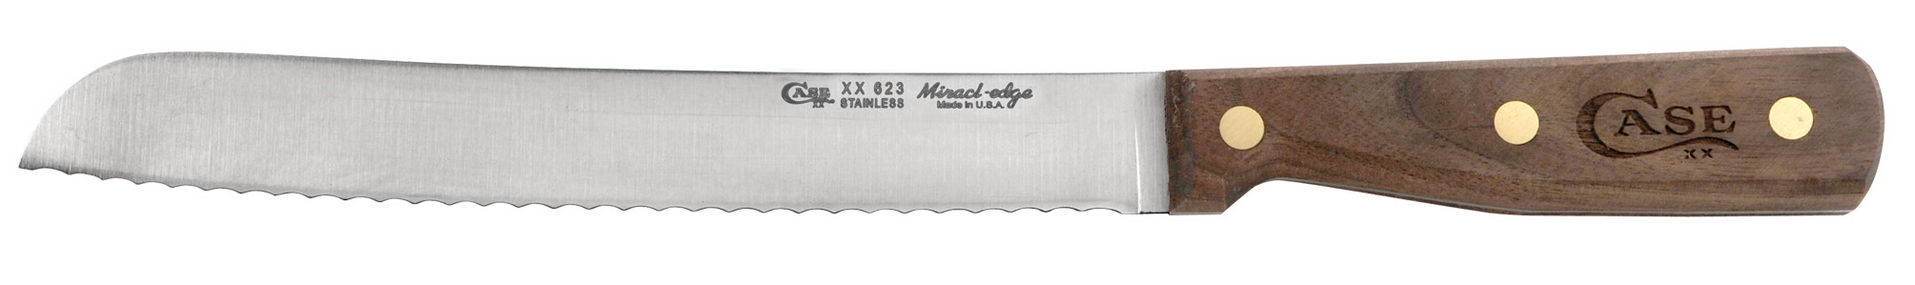 CASE XX KNIFE 7318 8-INCH BREAD KNIFE